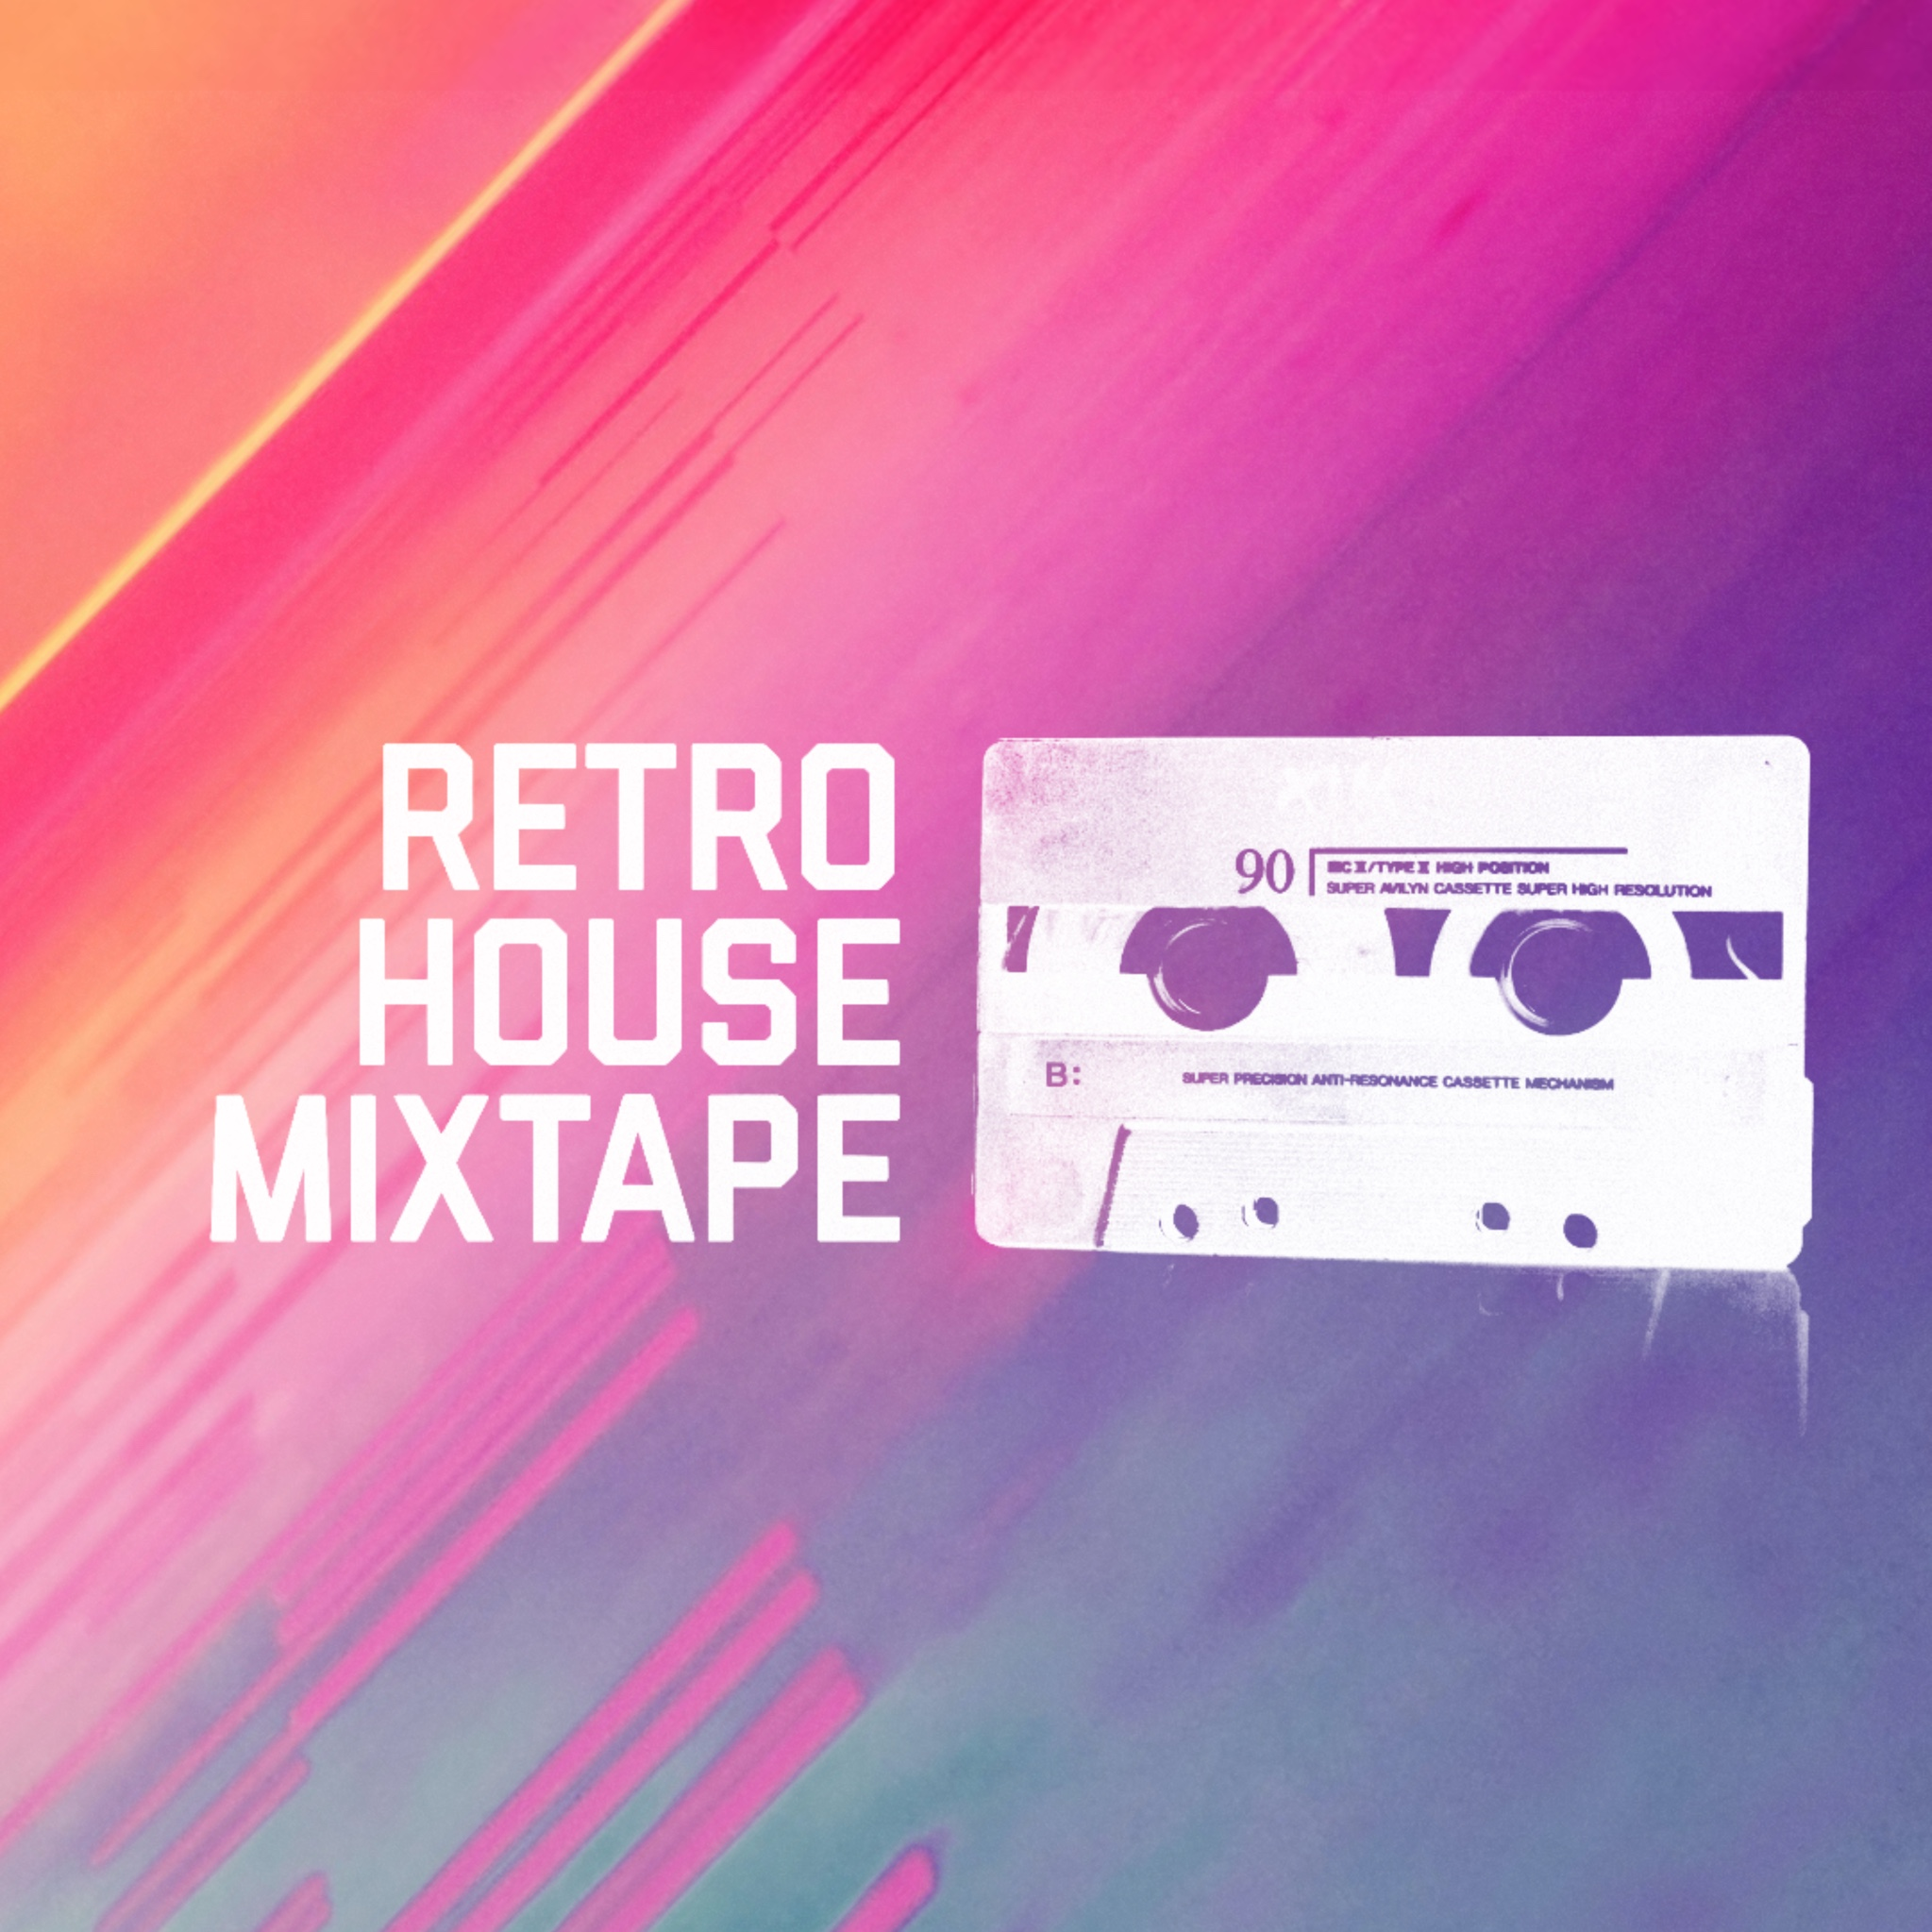 DISCO'S REVENGE - Retro House Mixtape